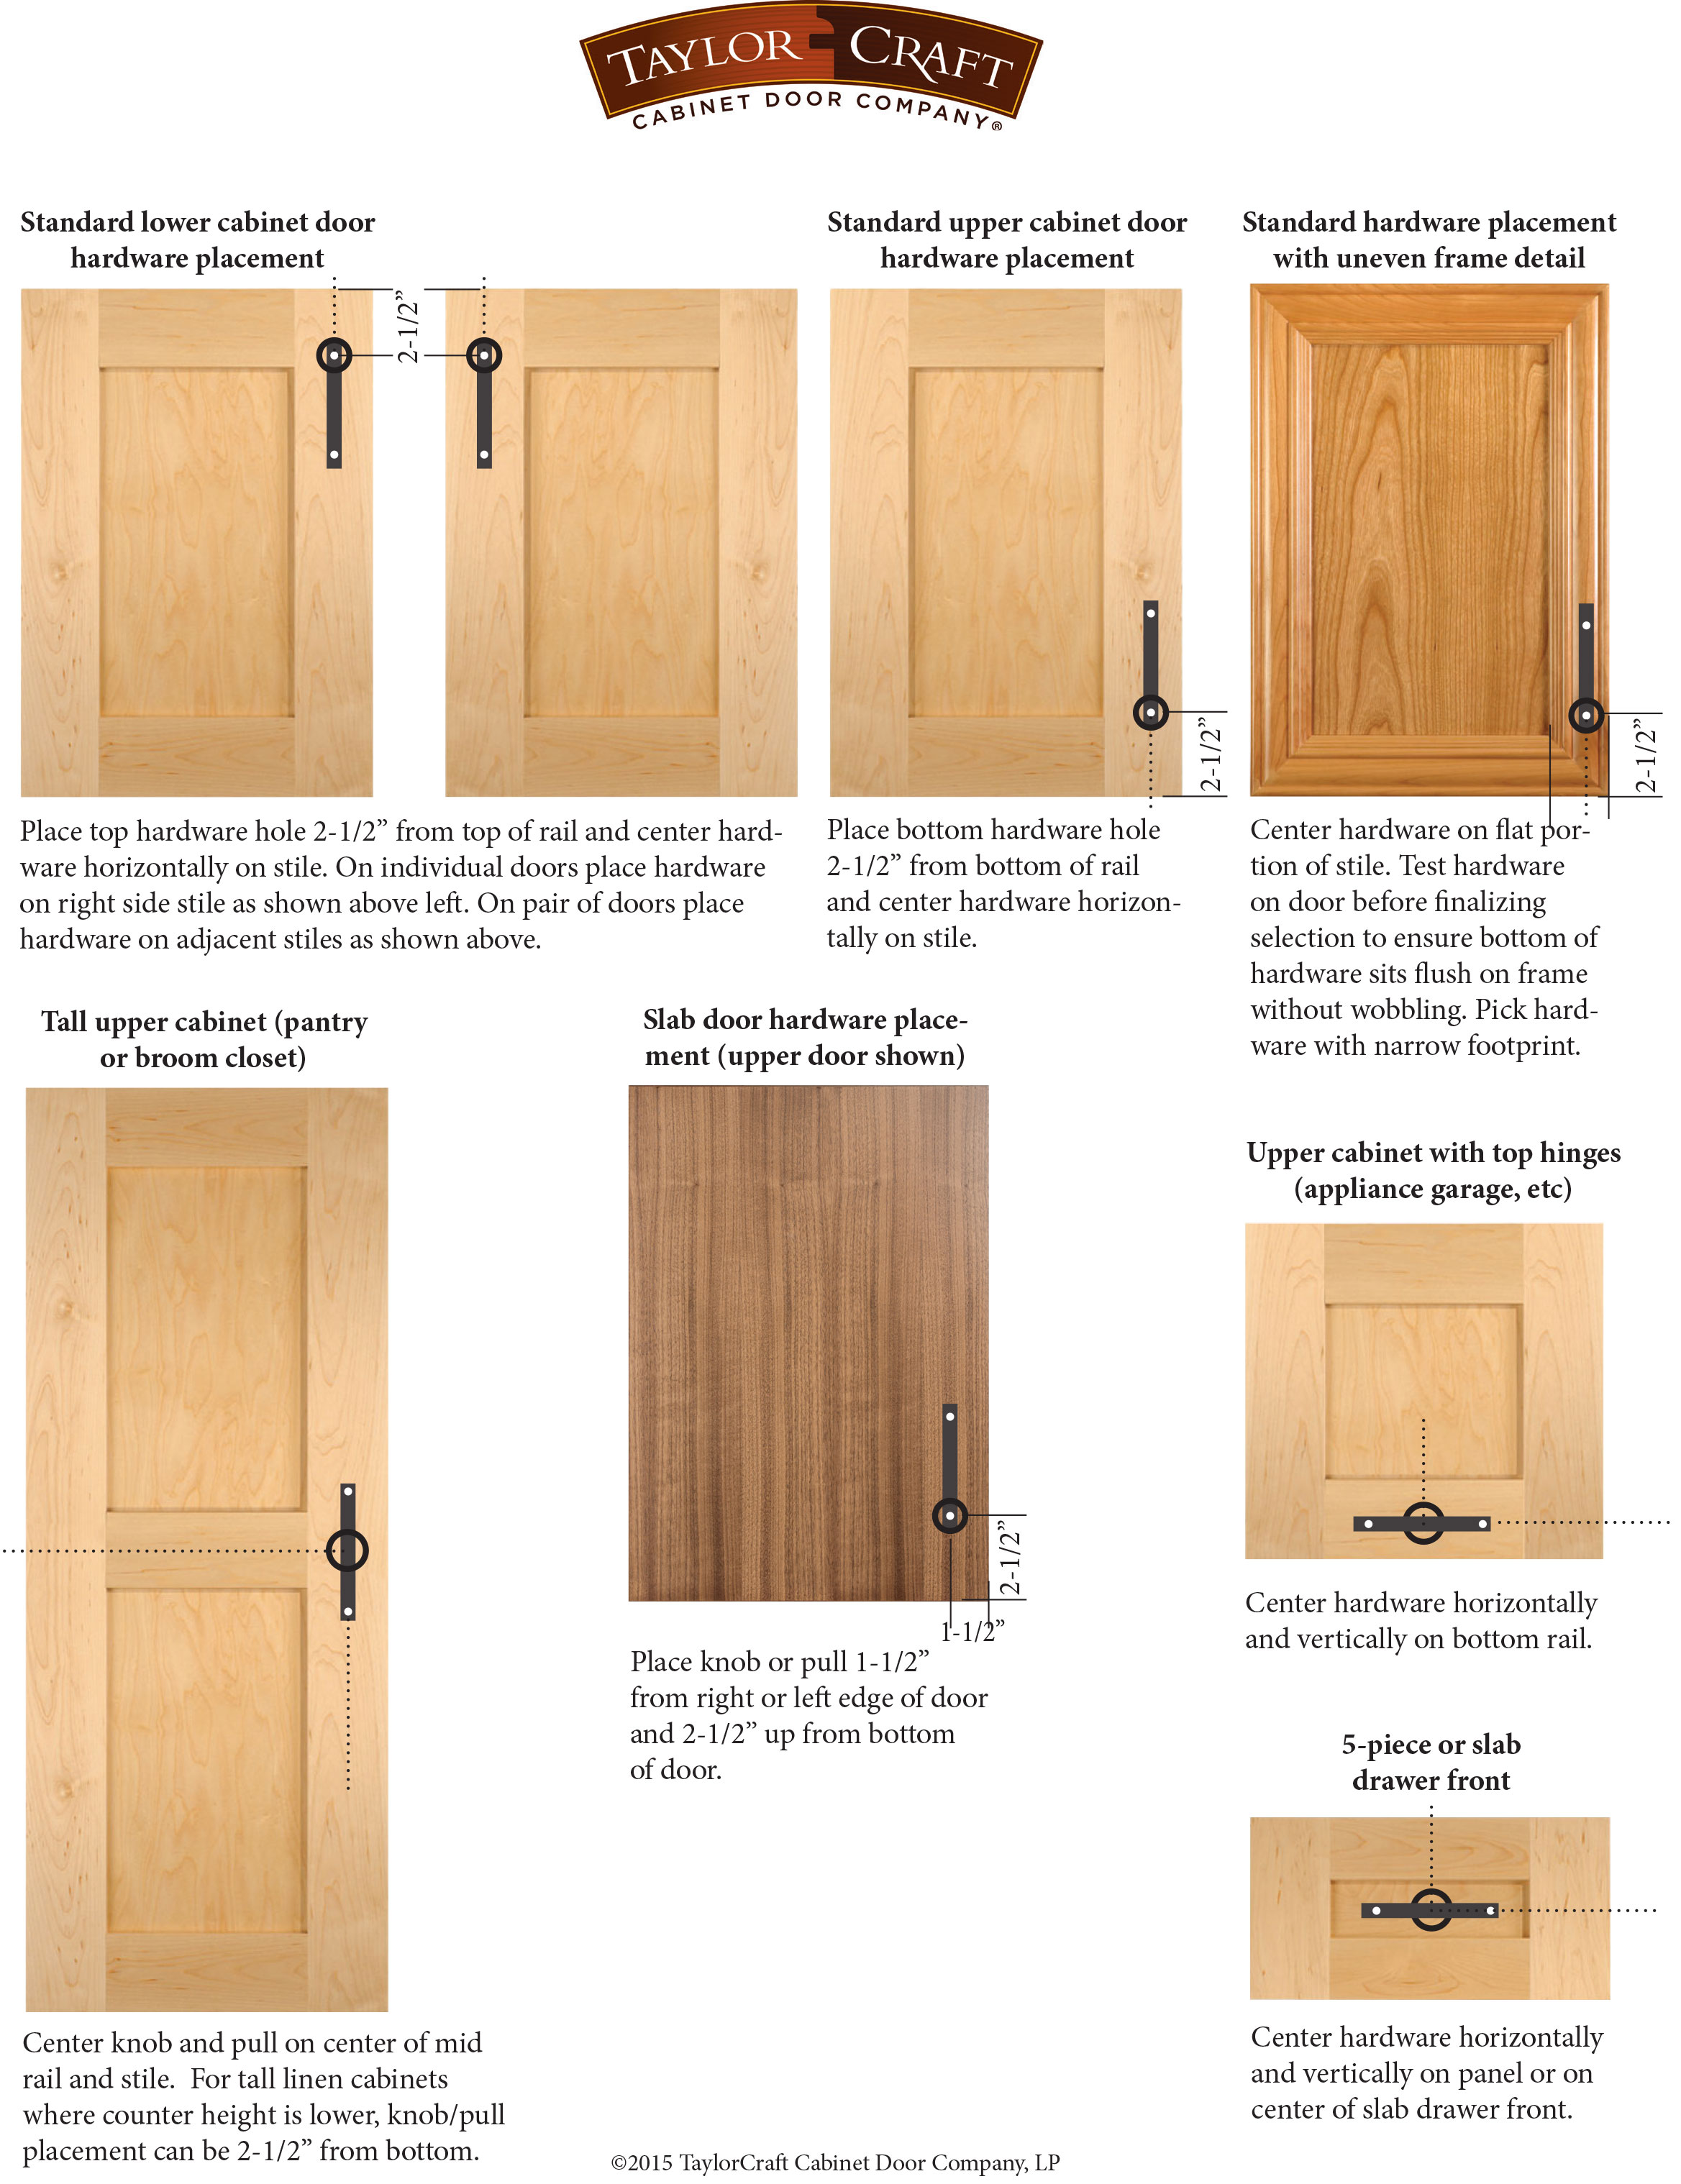 Charmant Cabinet Door Hardware Placement Guidelines   TaylorCraft Cabinet Door  Company